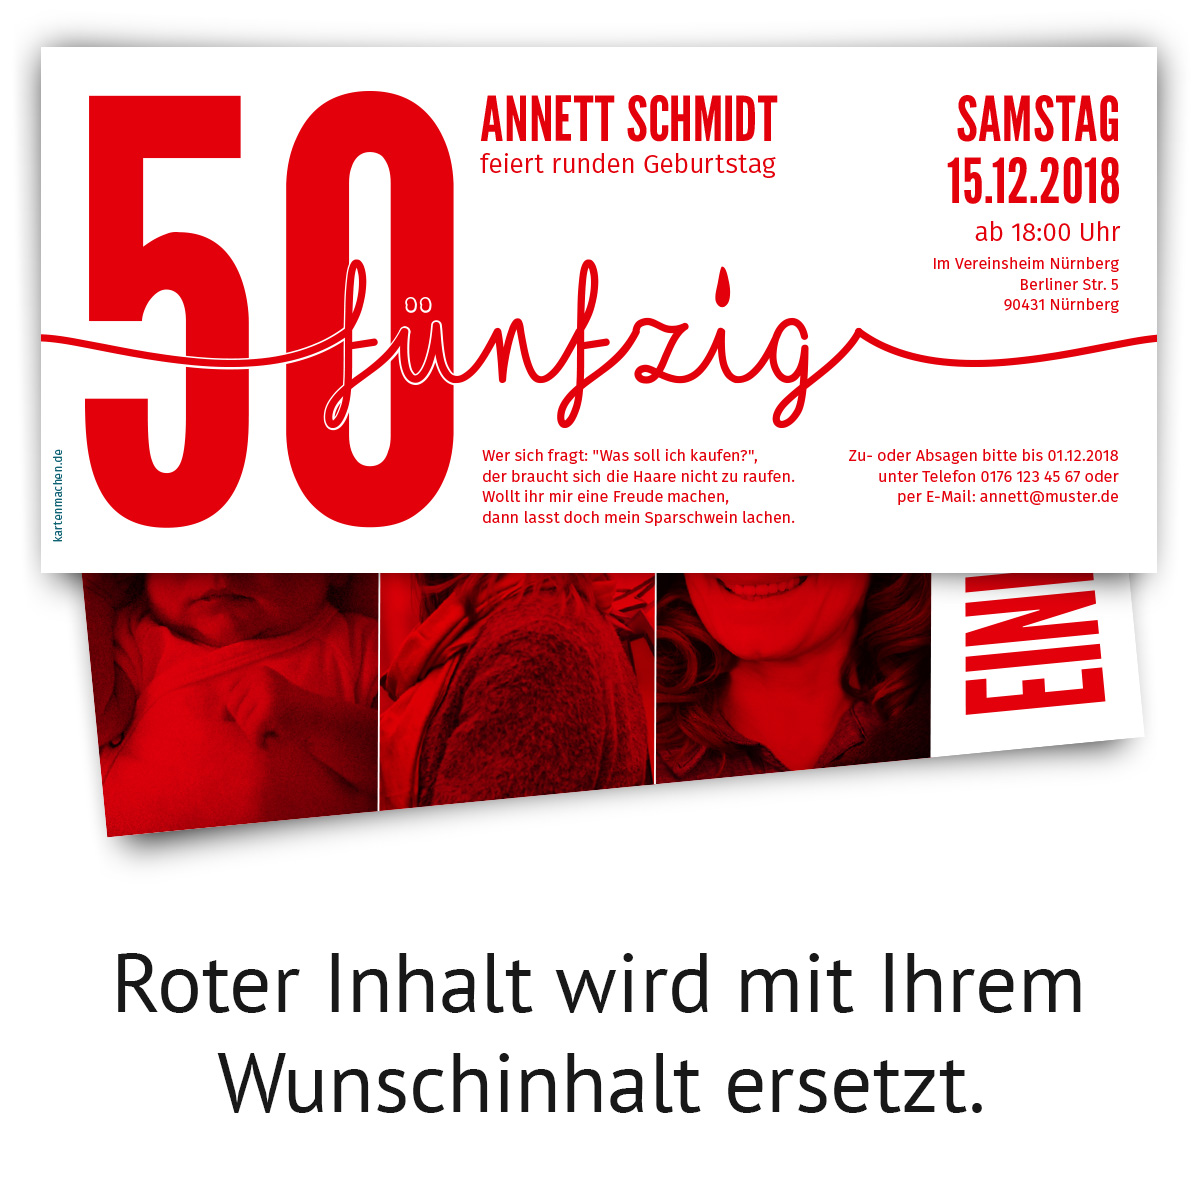 einladung runder geburtstag 50 jahre einladungskarten. Black Bedroom Furniture Sets. Home Design Ideas